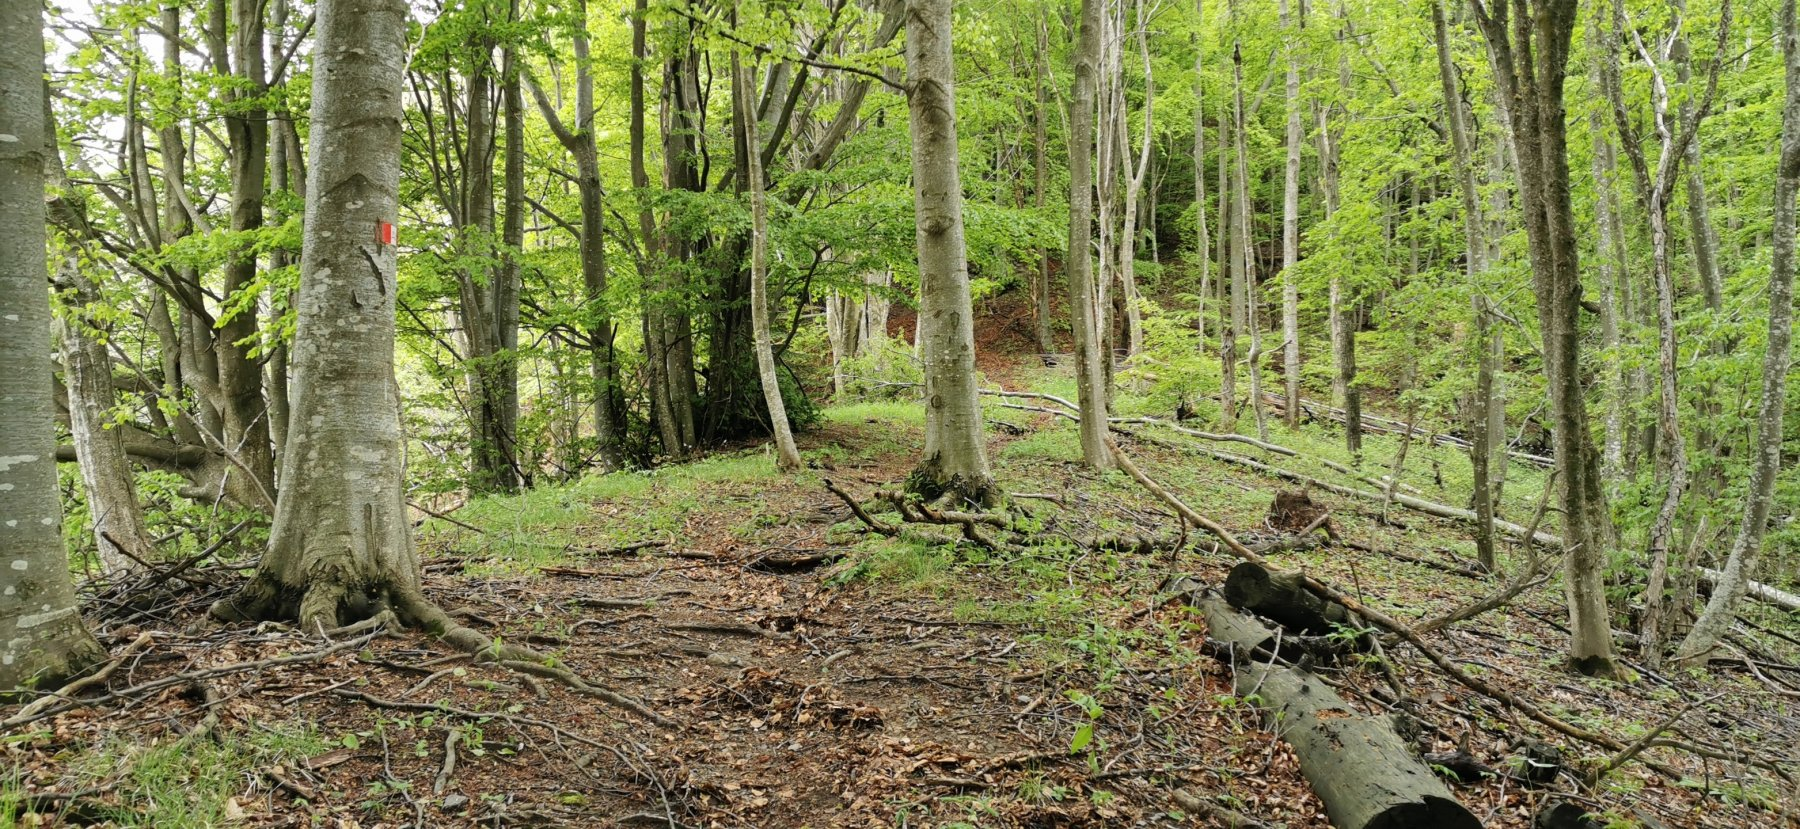 il sentiero sale inizialmente all'interno di un fitto bosco